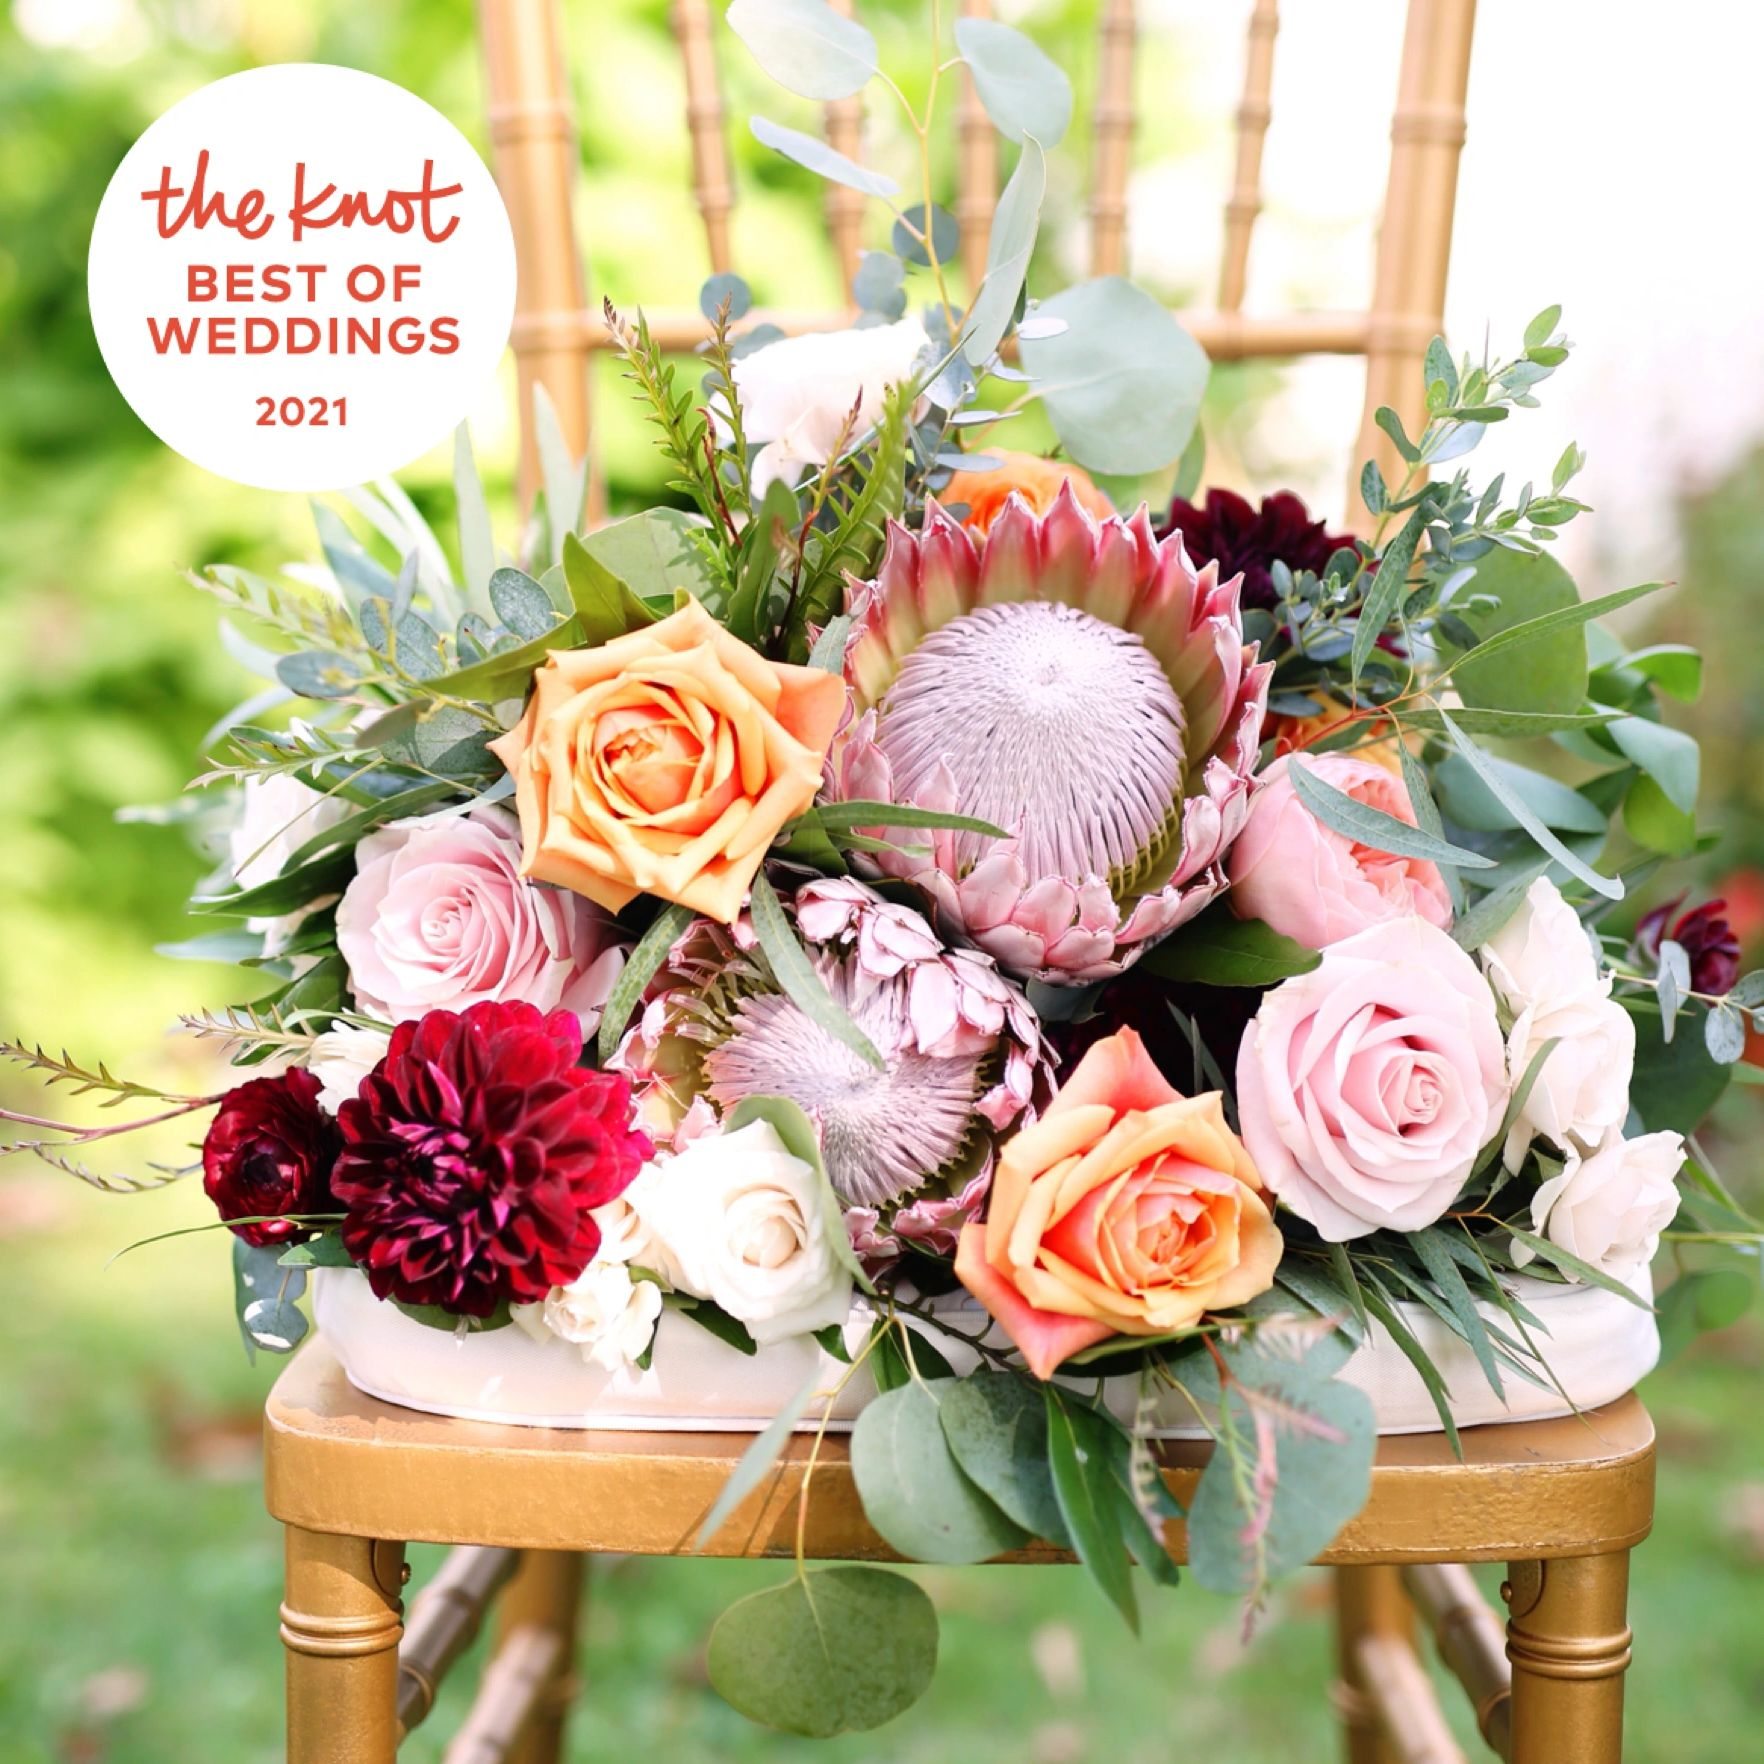 The Knot Best of Weddings 2021 Bridal Flower Bouquet